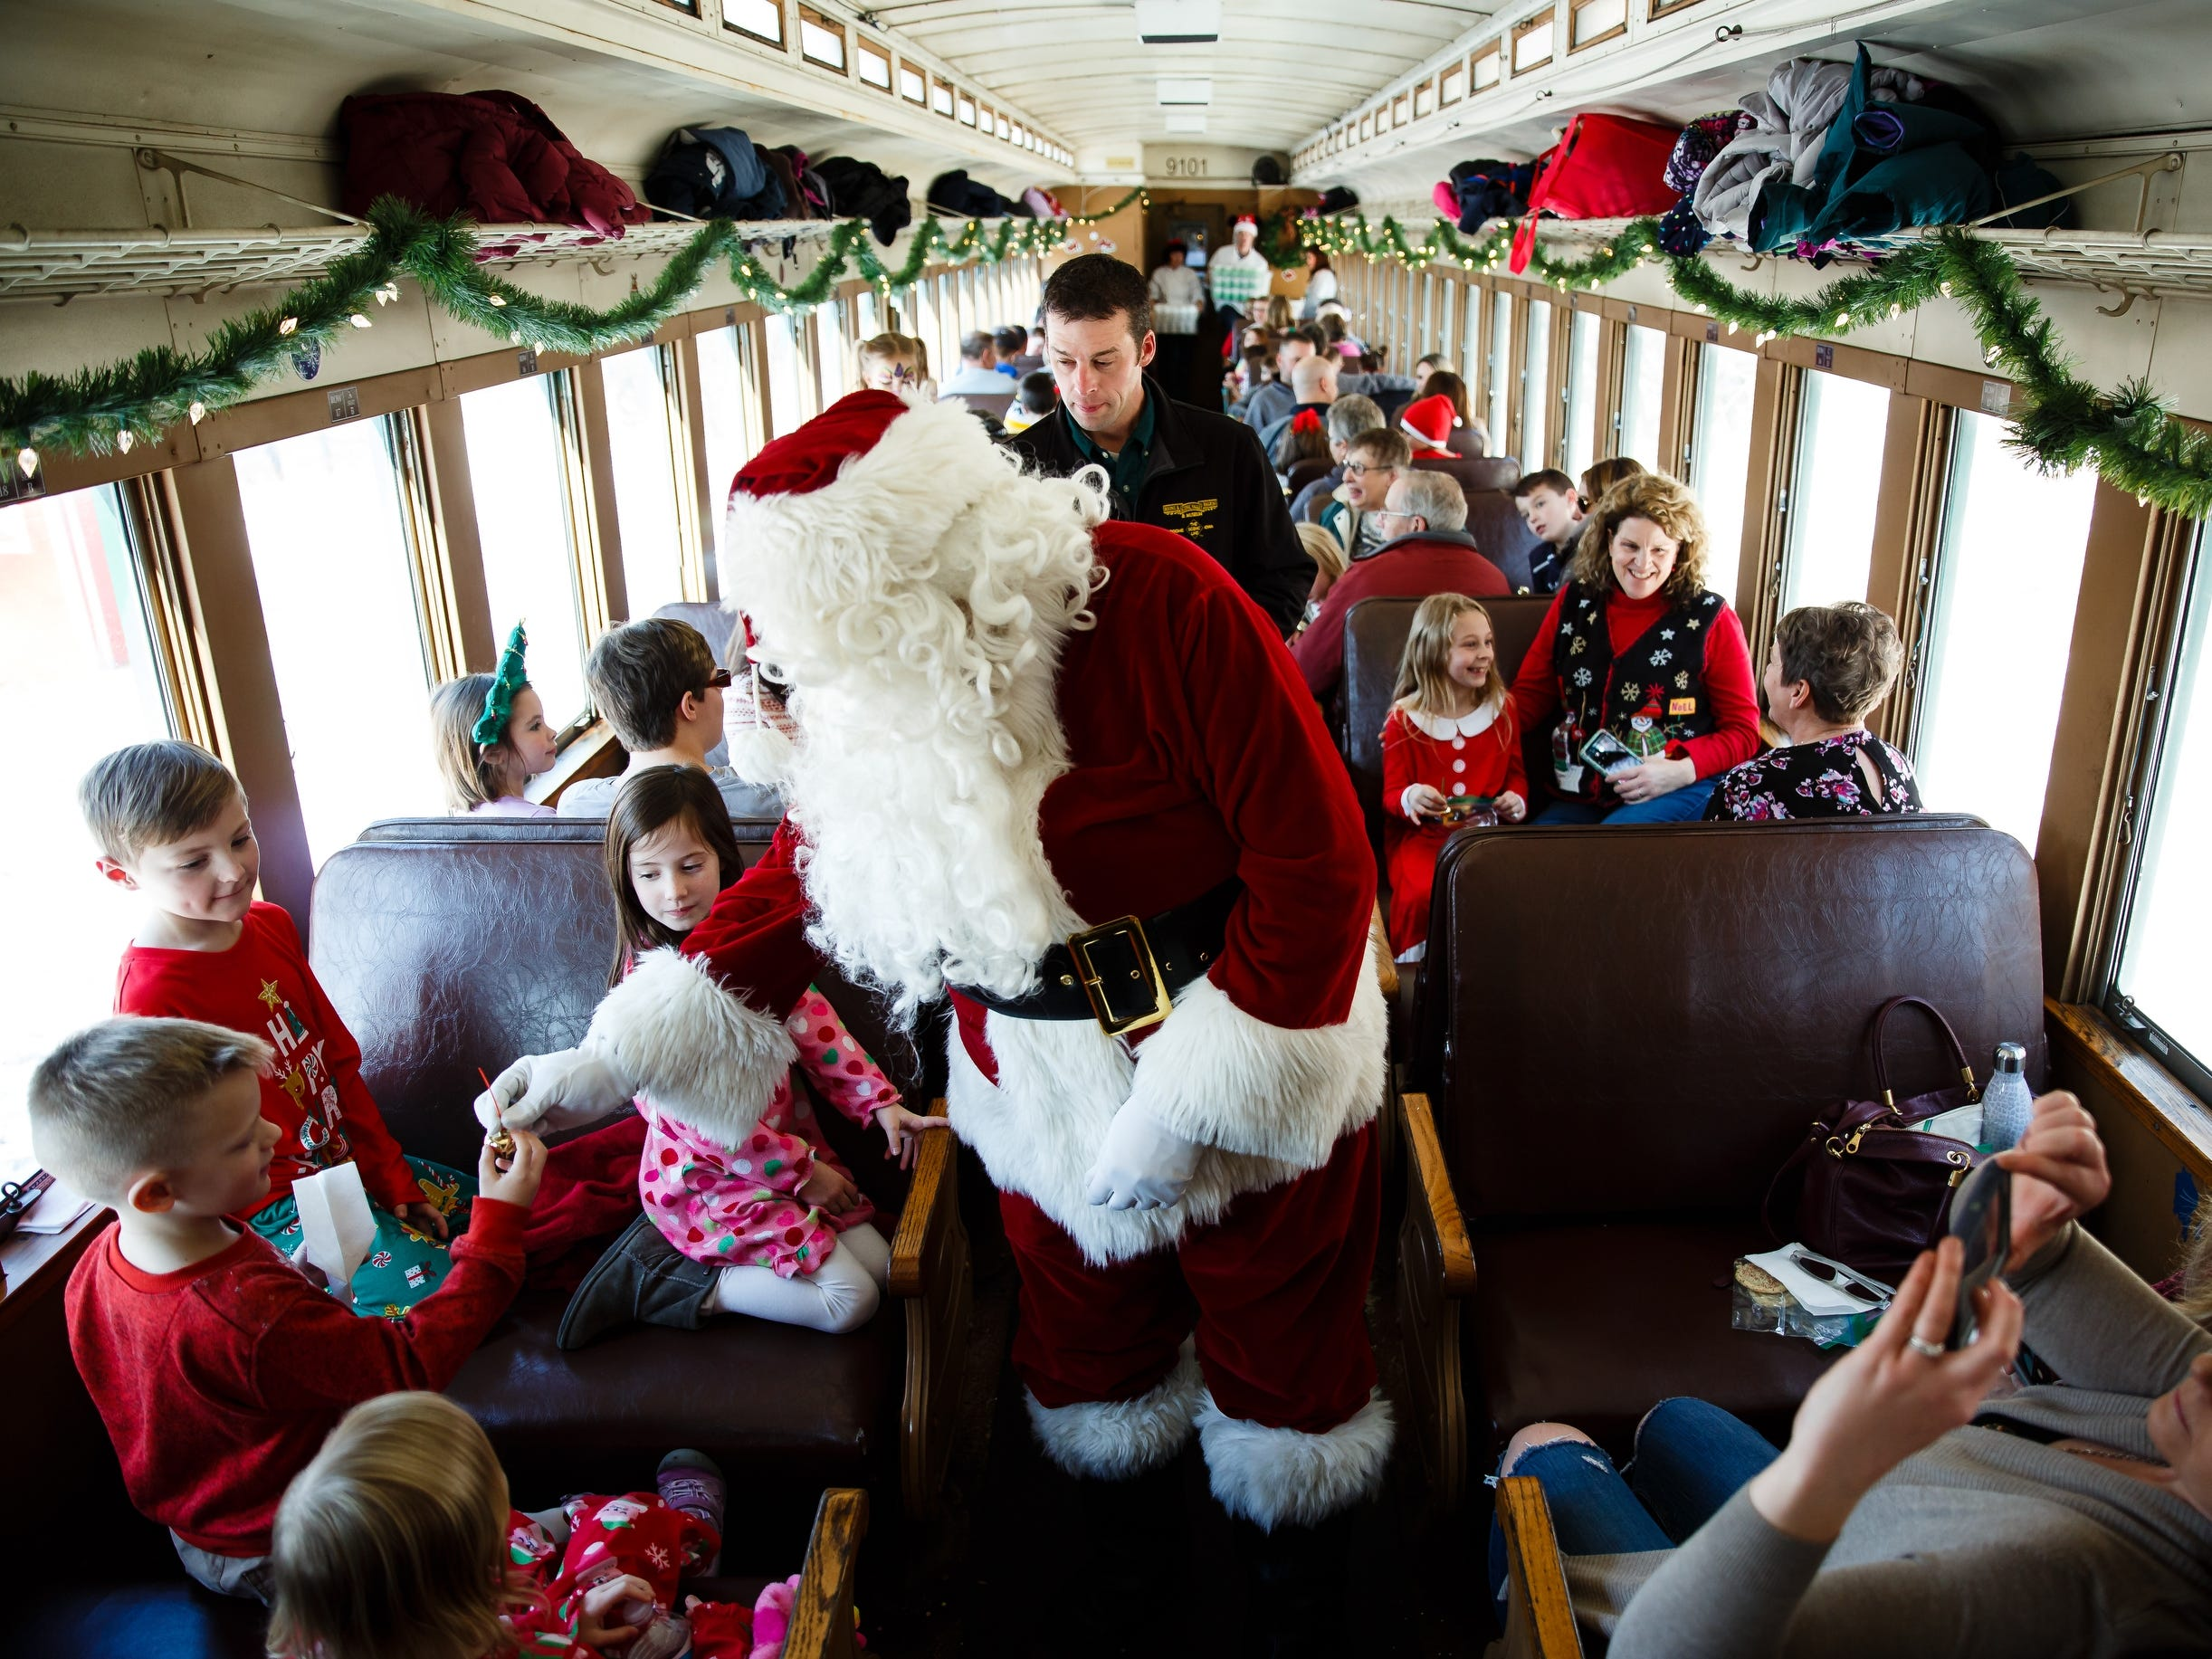 Children get bells from Santa, played by volunteer Roy Hogan, during the Santa Express at the Boone and Scenic Valley Railroads on Saturday, Dec. 8, 2018, in Boone.